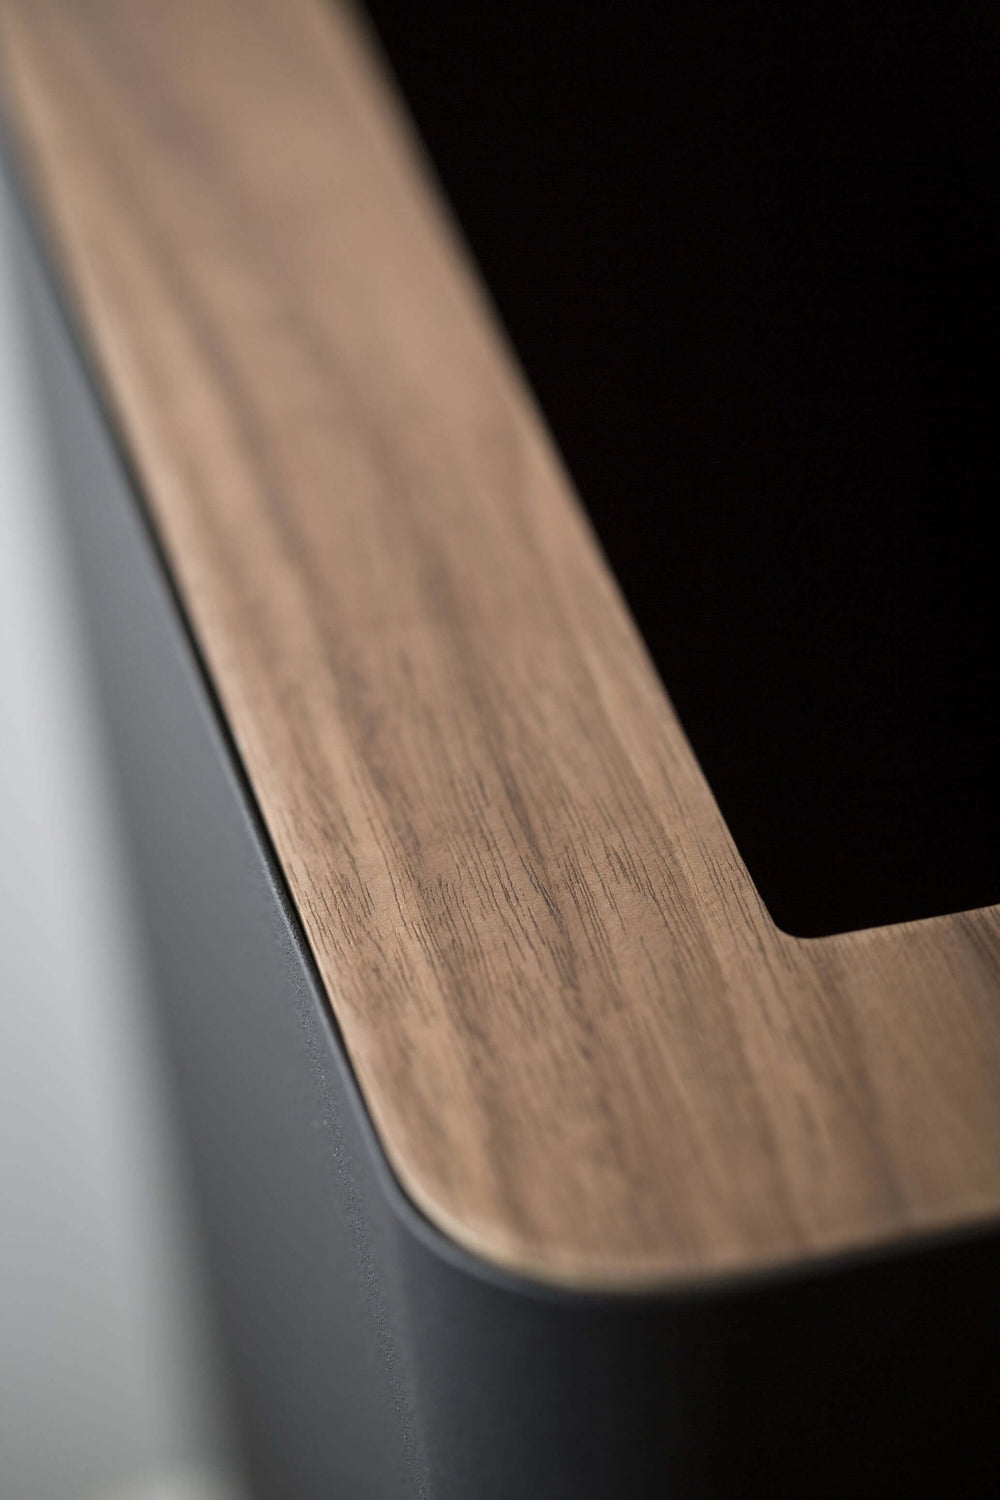 Close look at wooden top of Yamazaki's black rectangular trash can